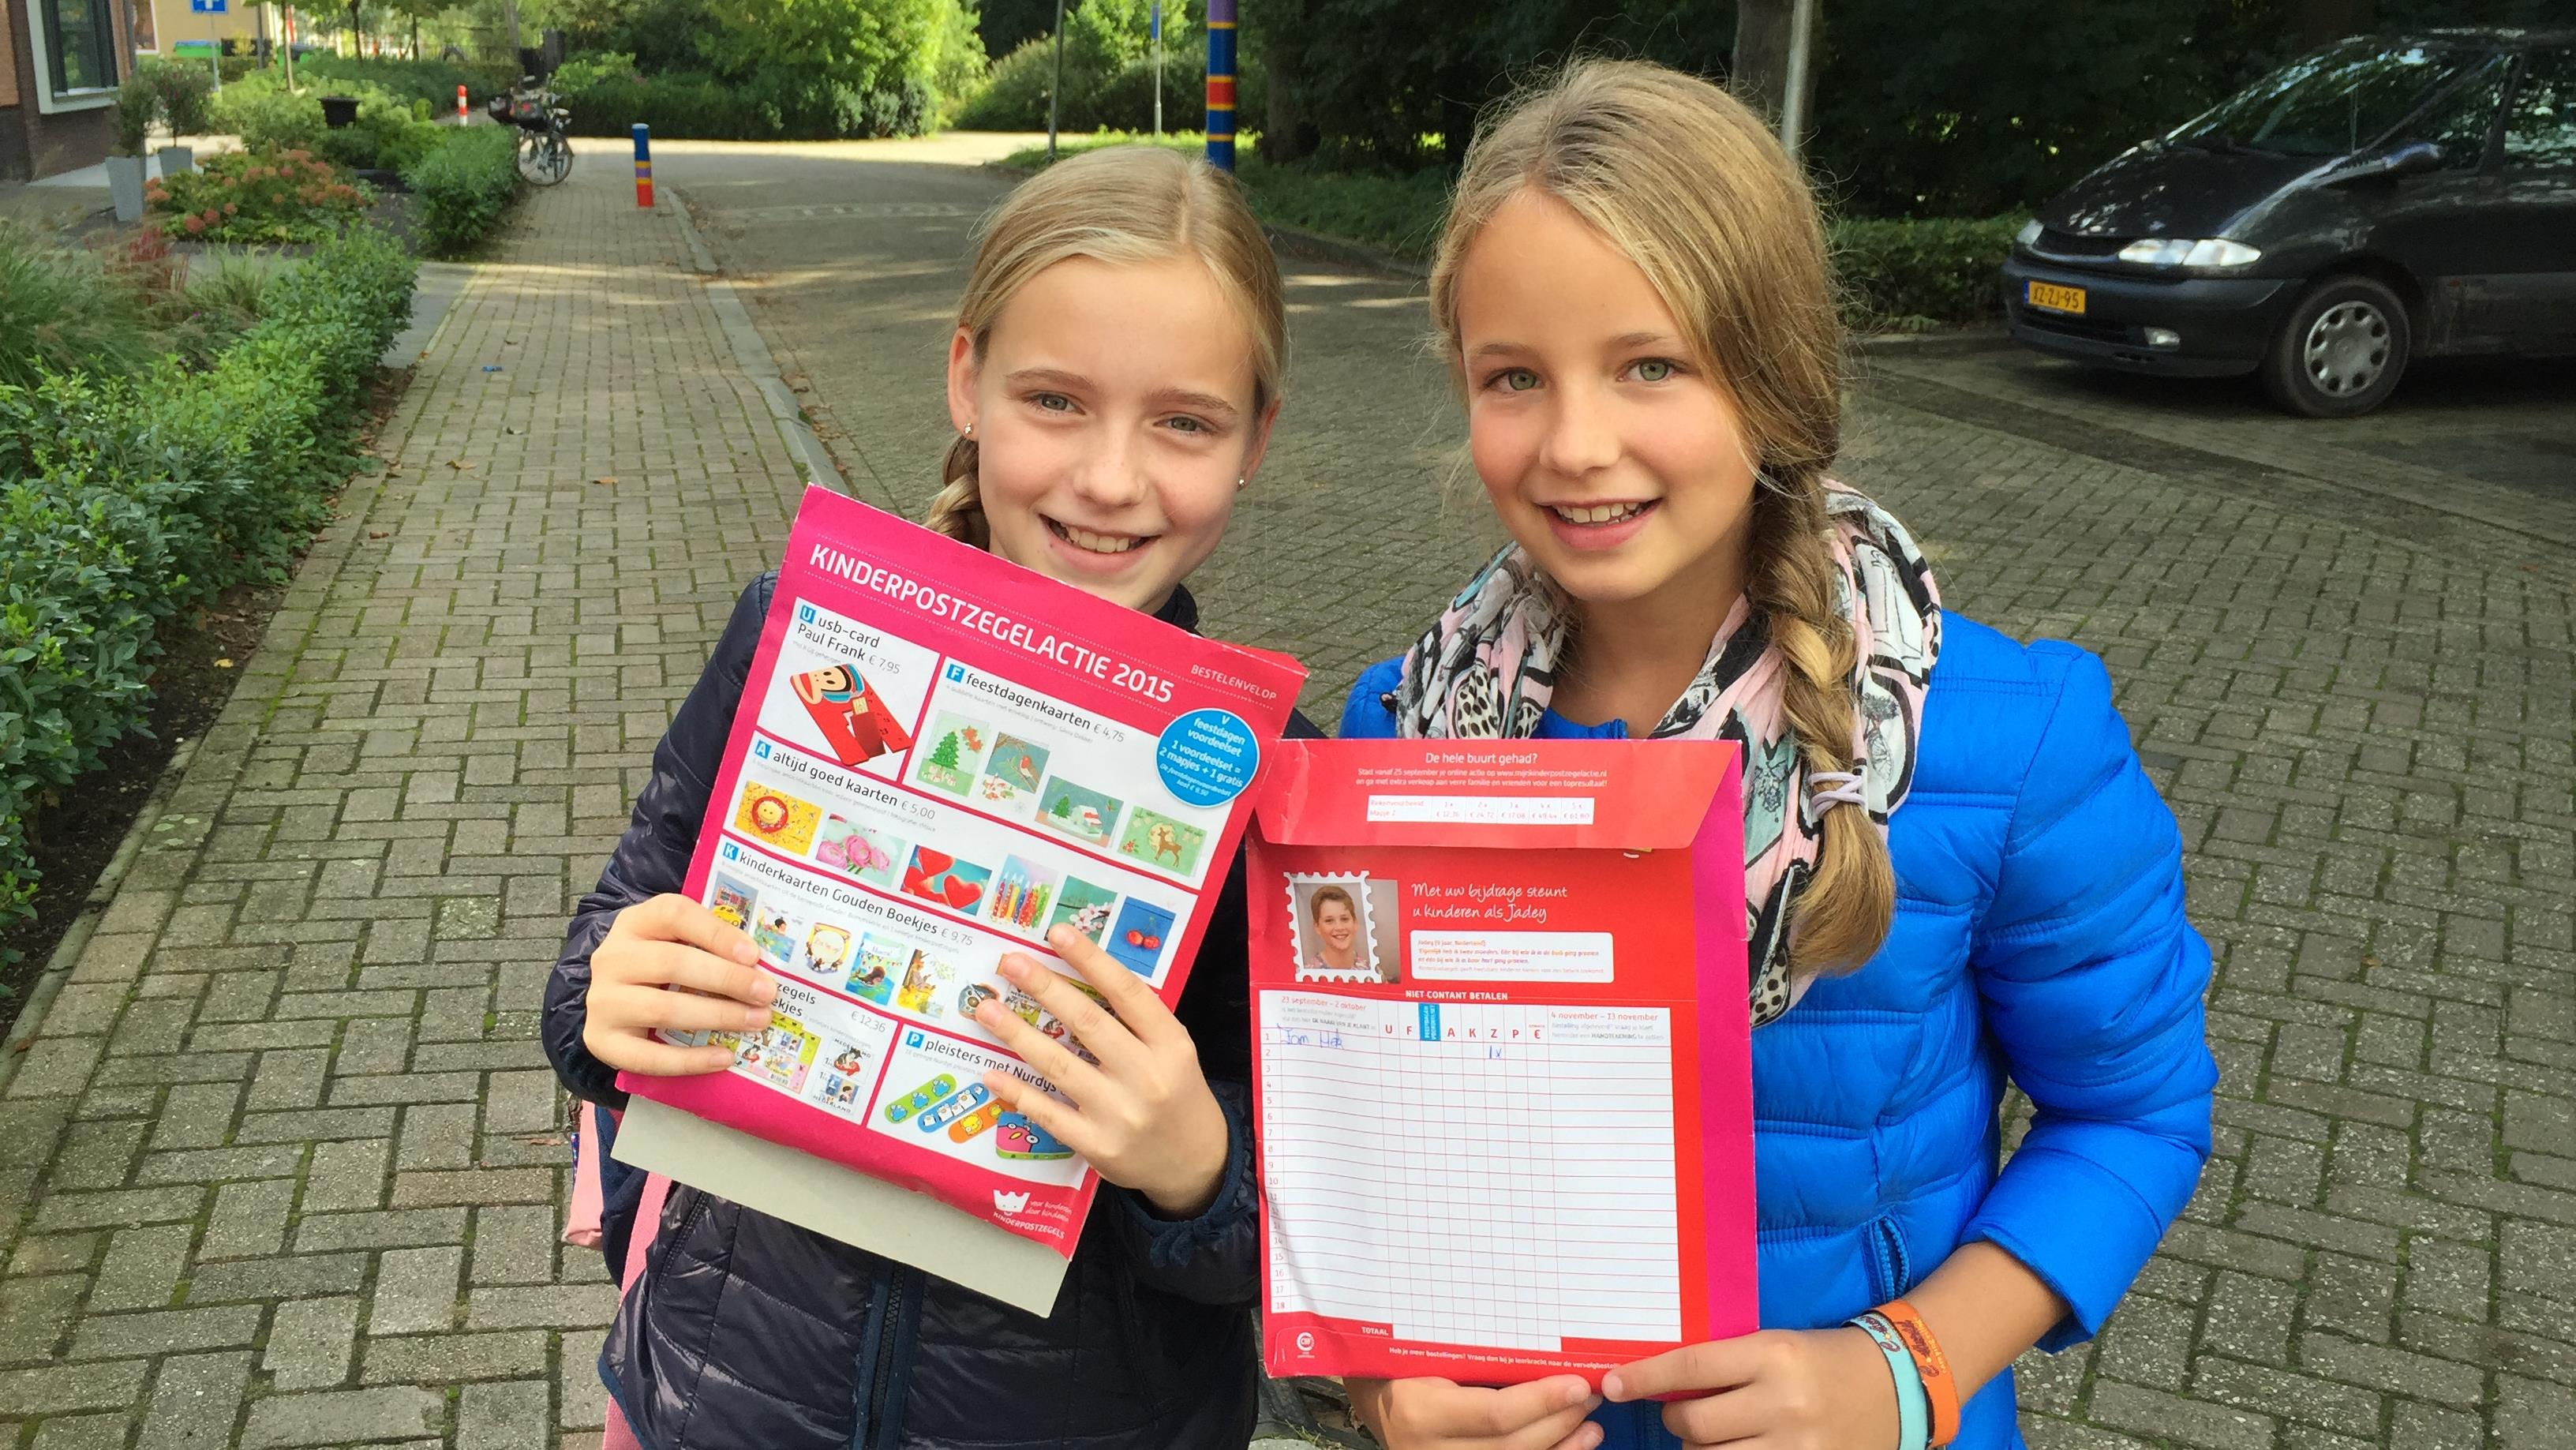 Dutch schoolgirls with Kinderpostalzegels order packets during the 2015 campaign.